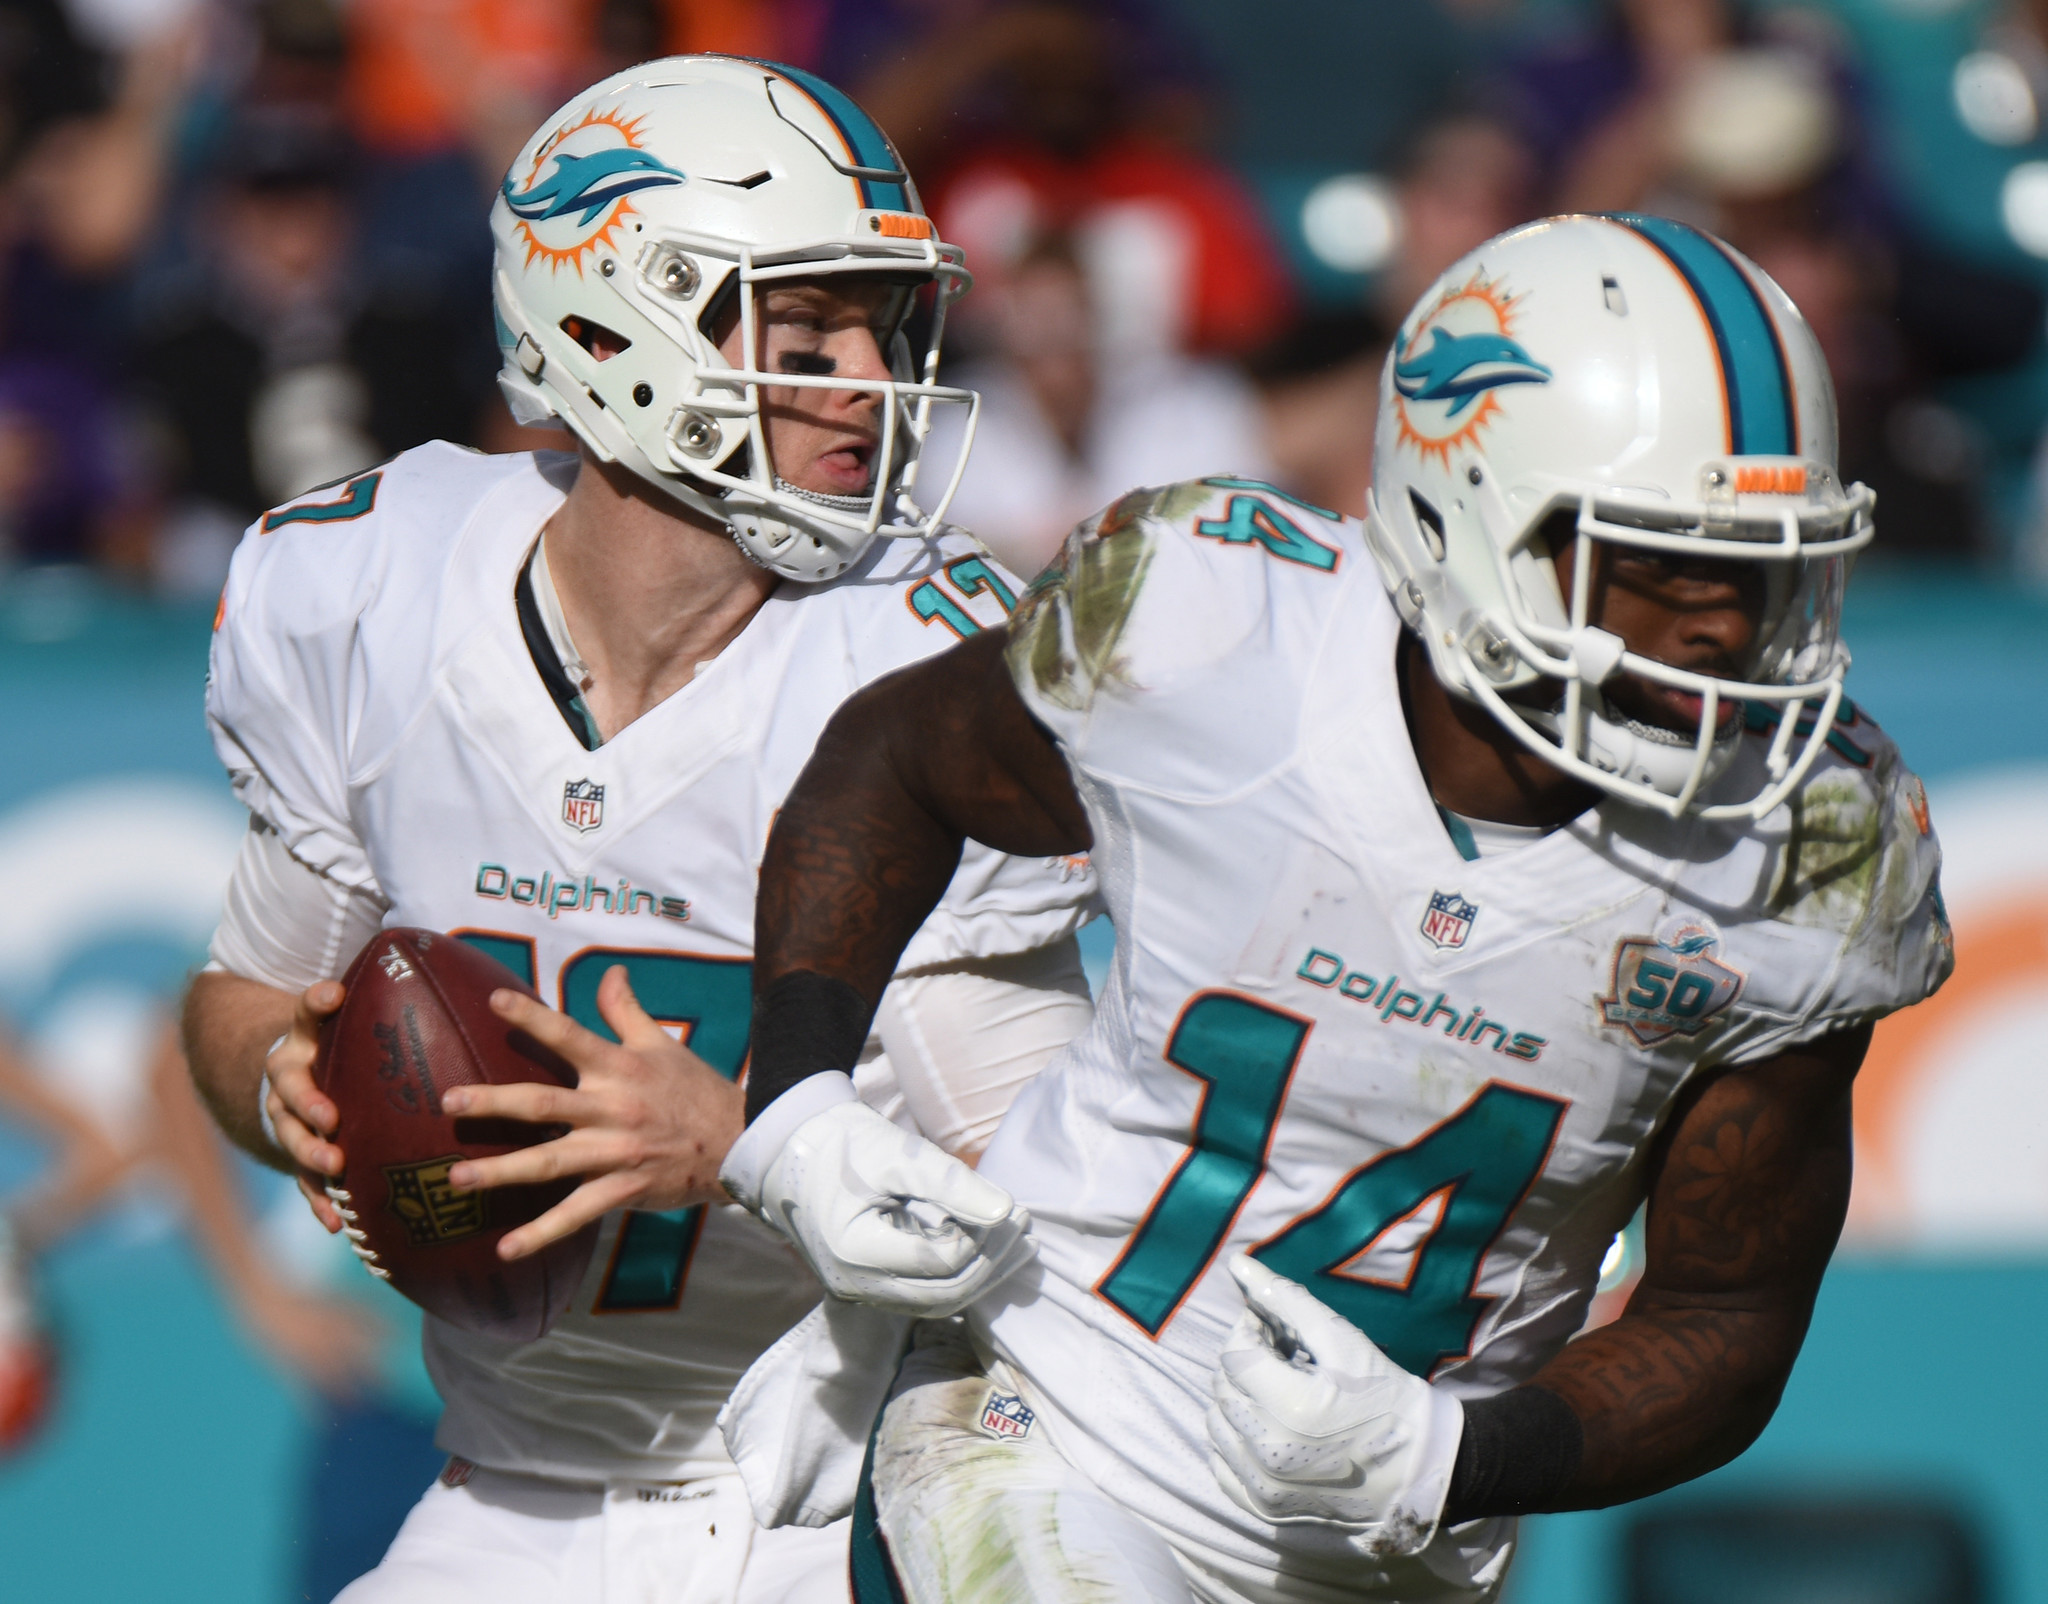 Sfl-dolphins-perkins-roster-change-20180318